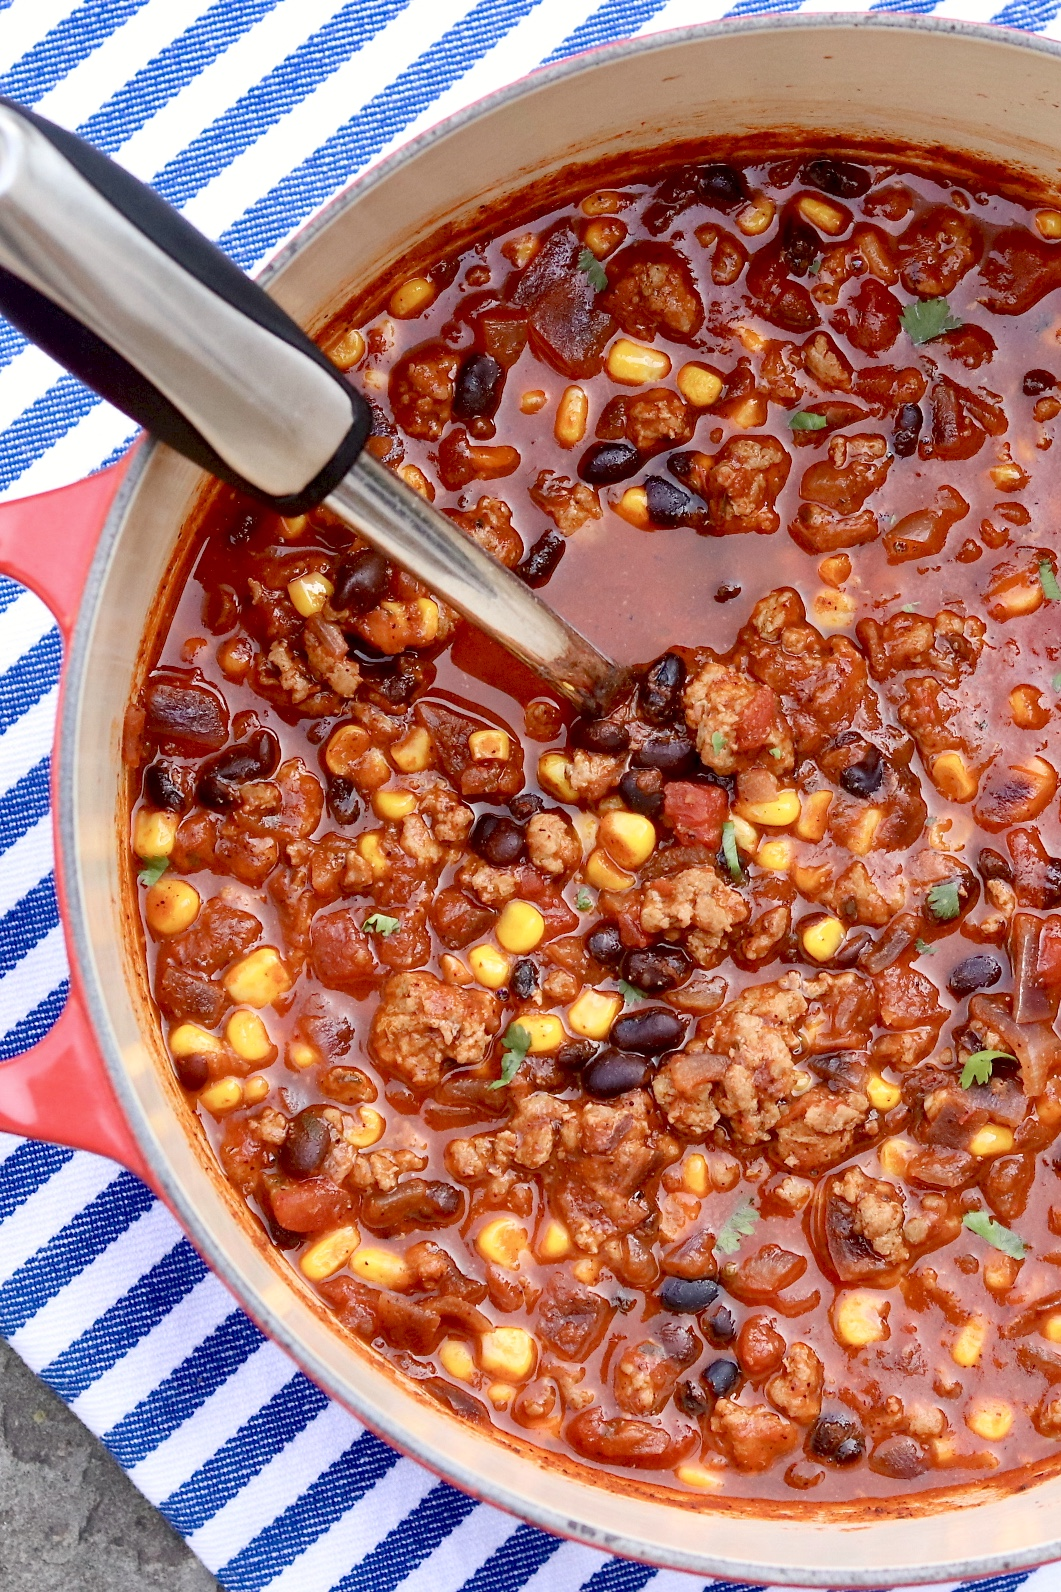 Aunt Peggy's Turkey Chili -Quick, easy and super satisfying, this flavorful meal is a go-to on busy nights and reheats beautifully.